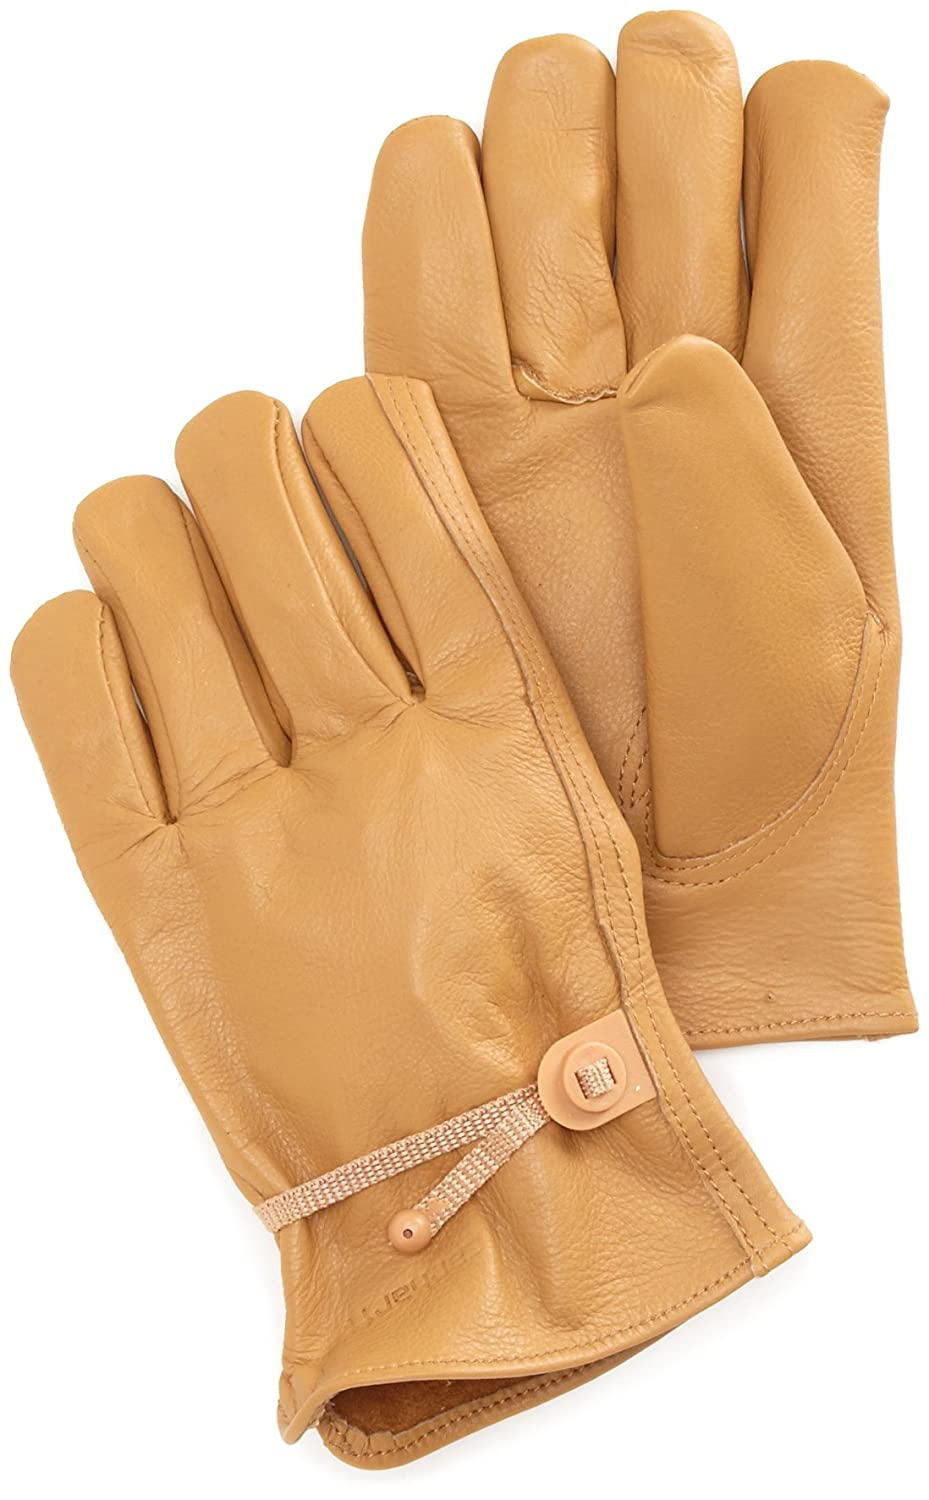 Carhartt Mens Full Grain Leather Driver Work Glove Carhartt Mens Gloves